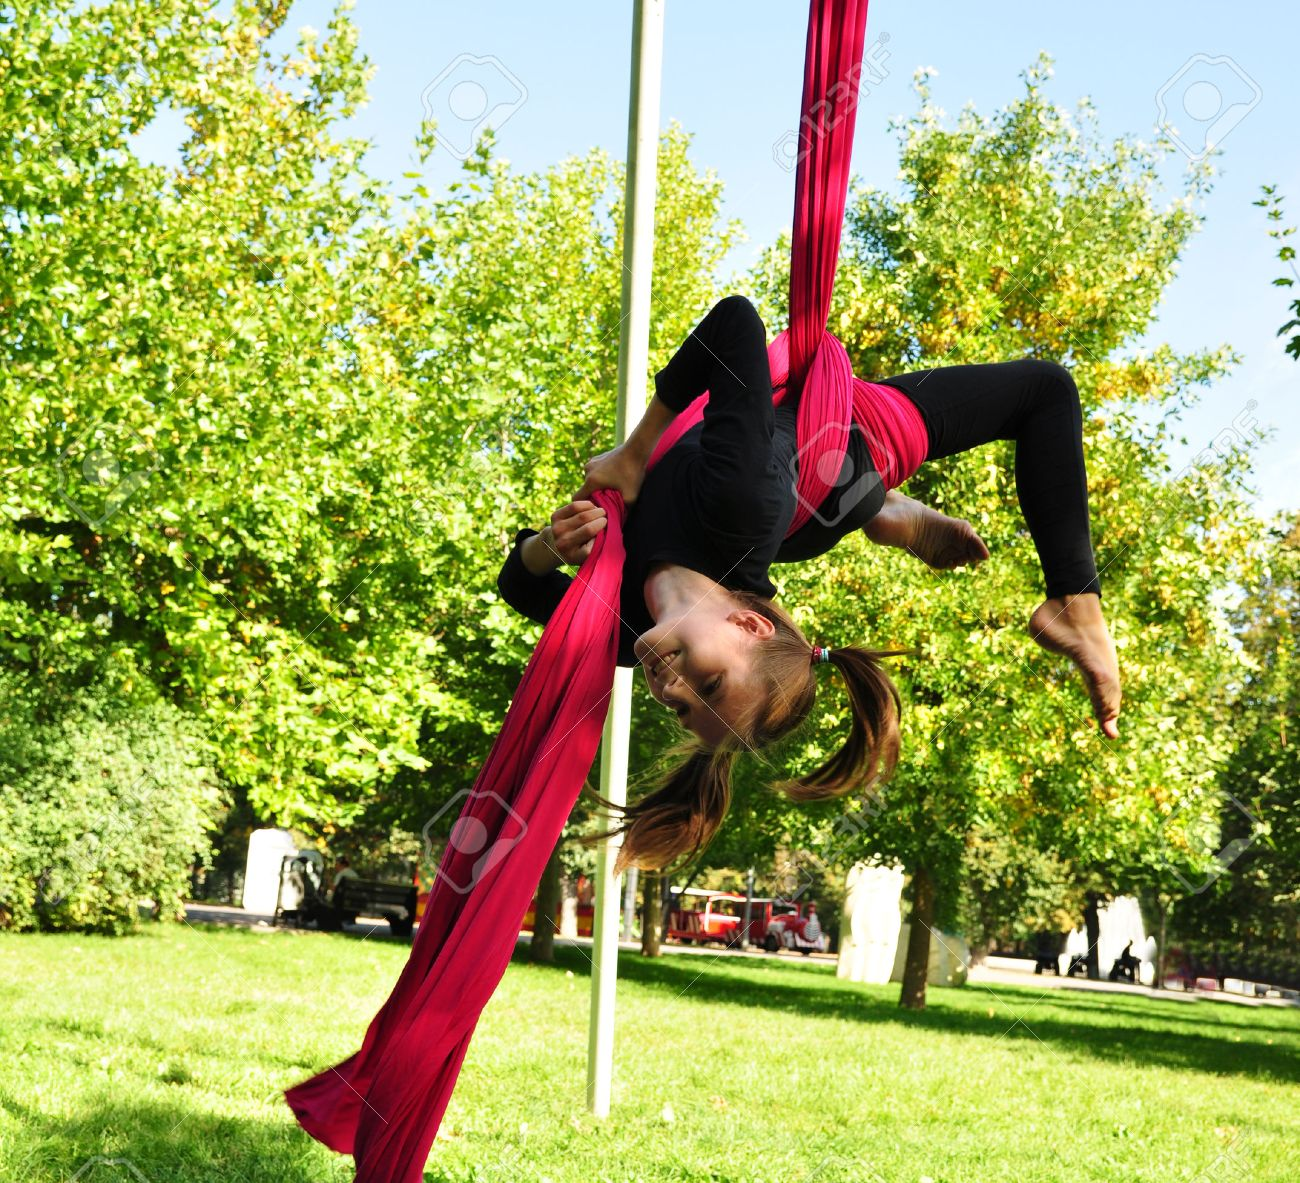 Outdoor Activity Of Cheerful Child Training On Aerial Silks Or ...